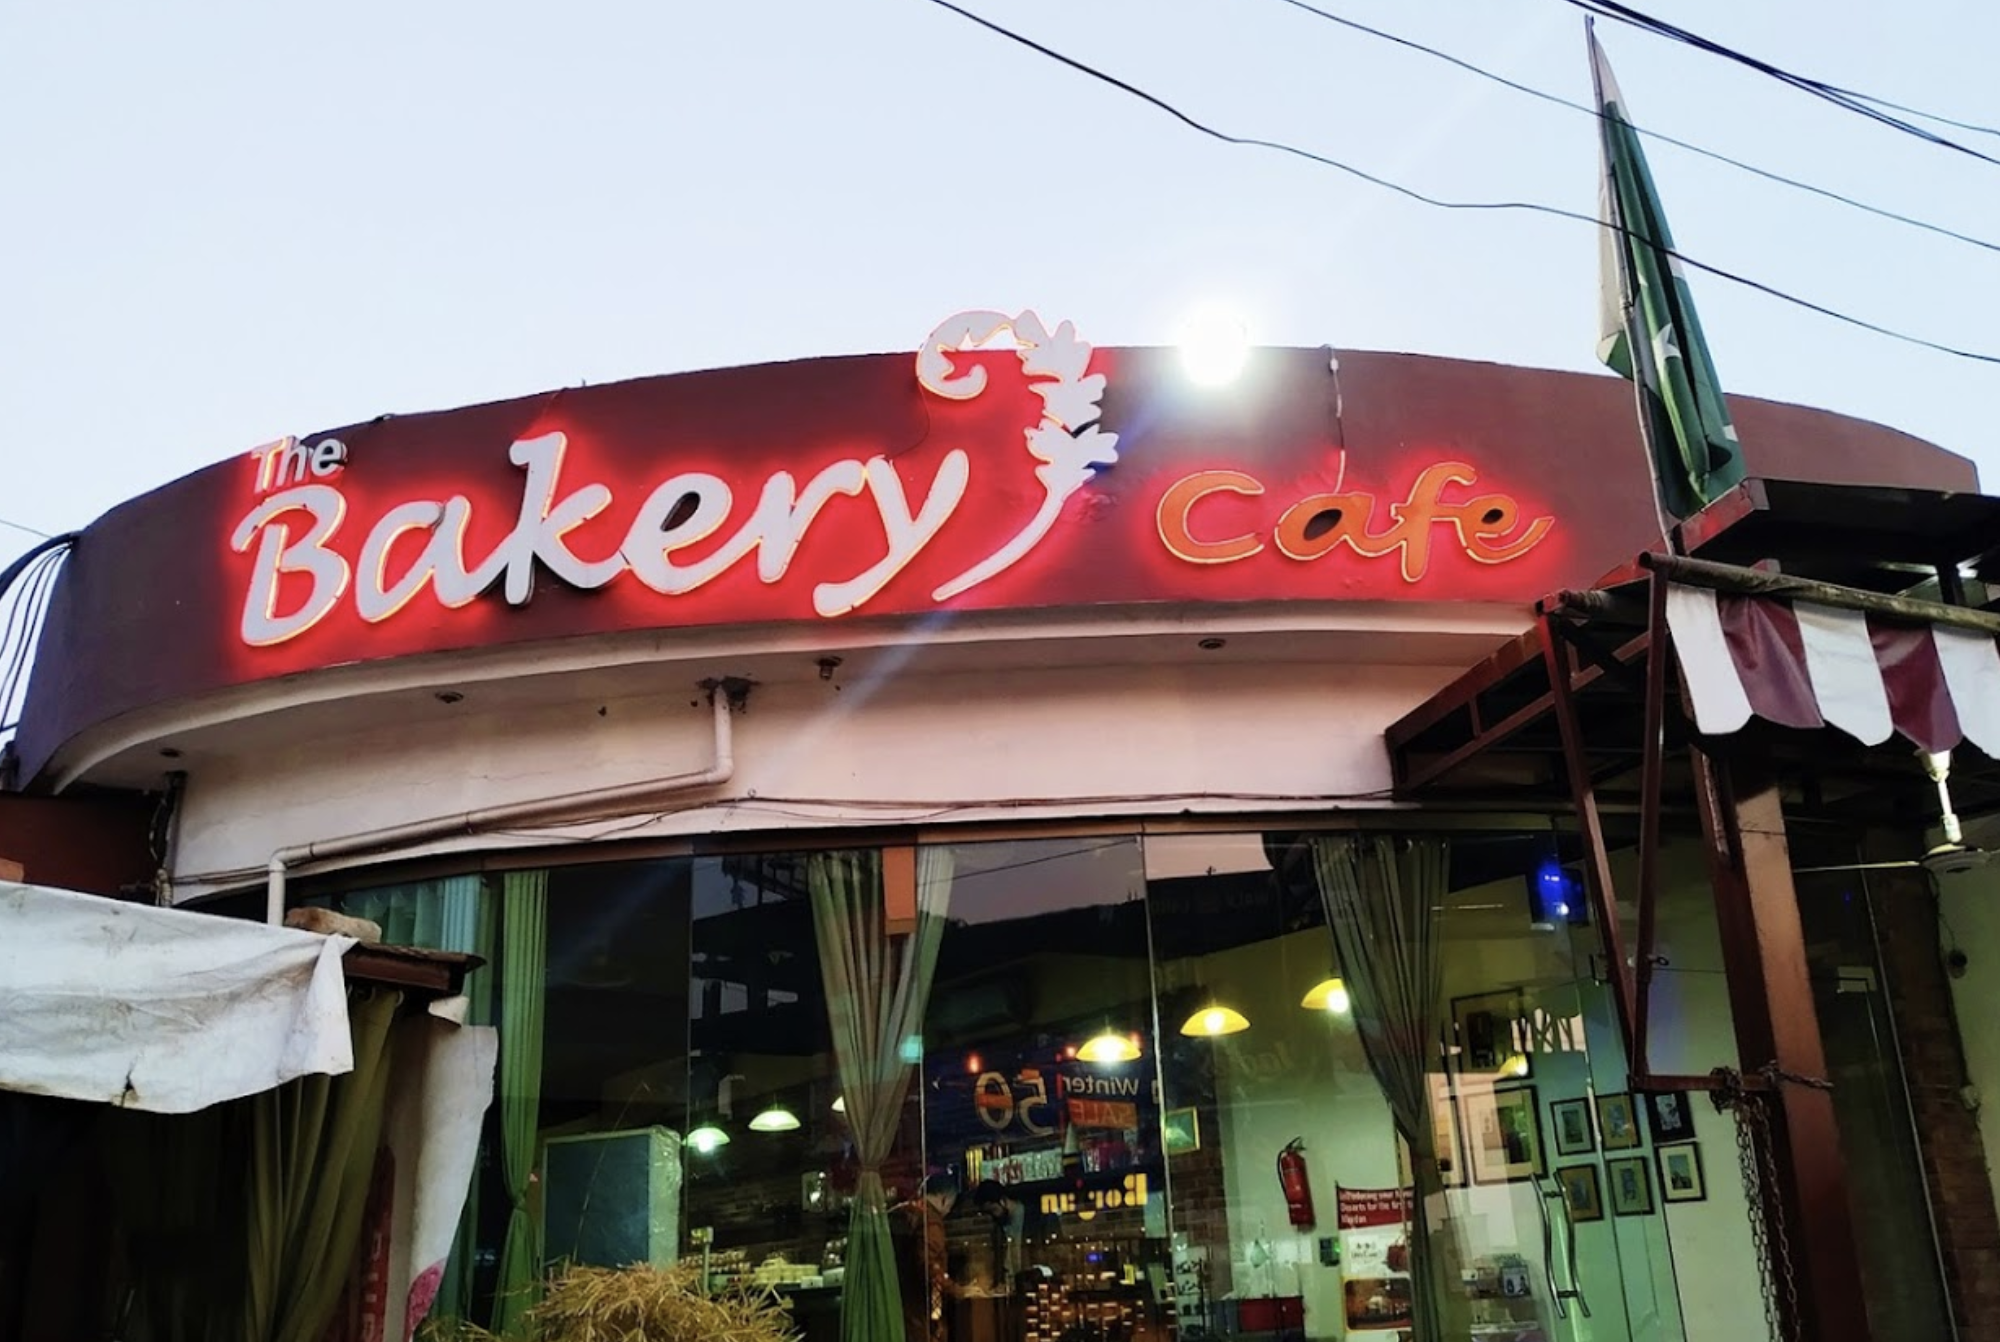 The Bakery Cafe